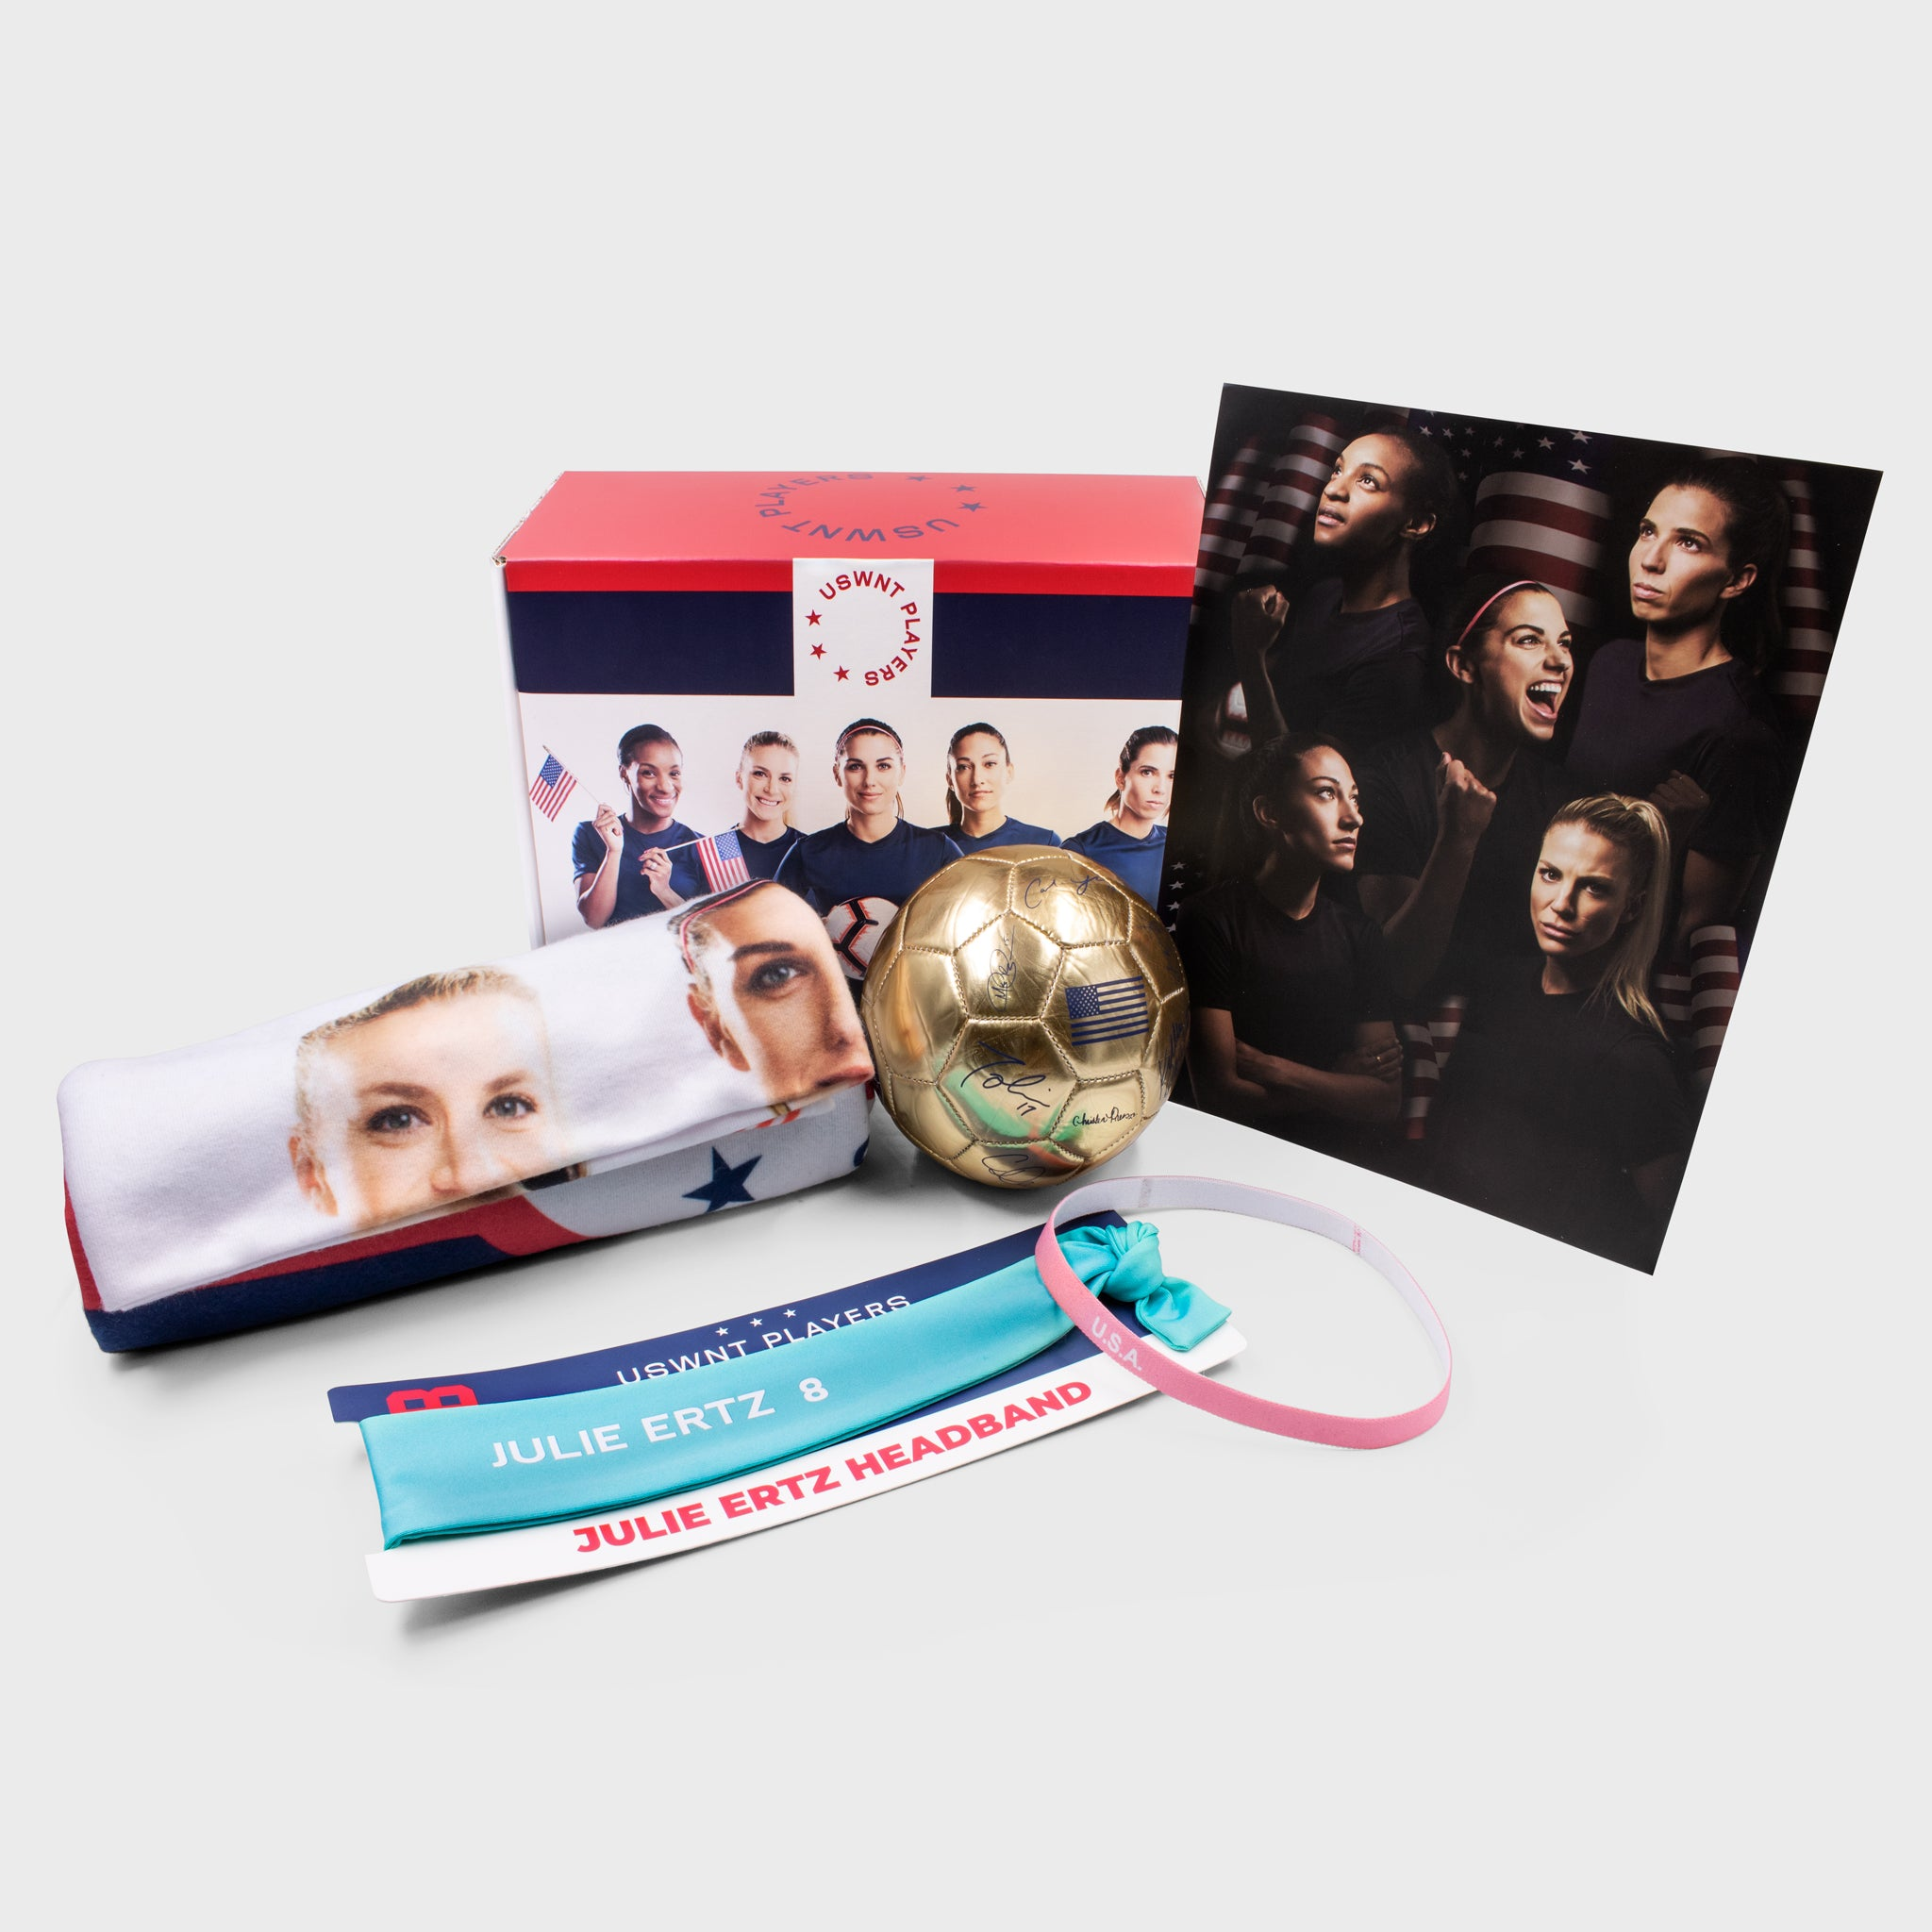 uswnt us usa united states women's national team soccer champion collectible exclusive box culturefly